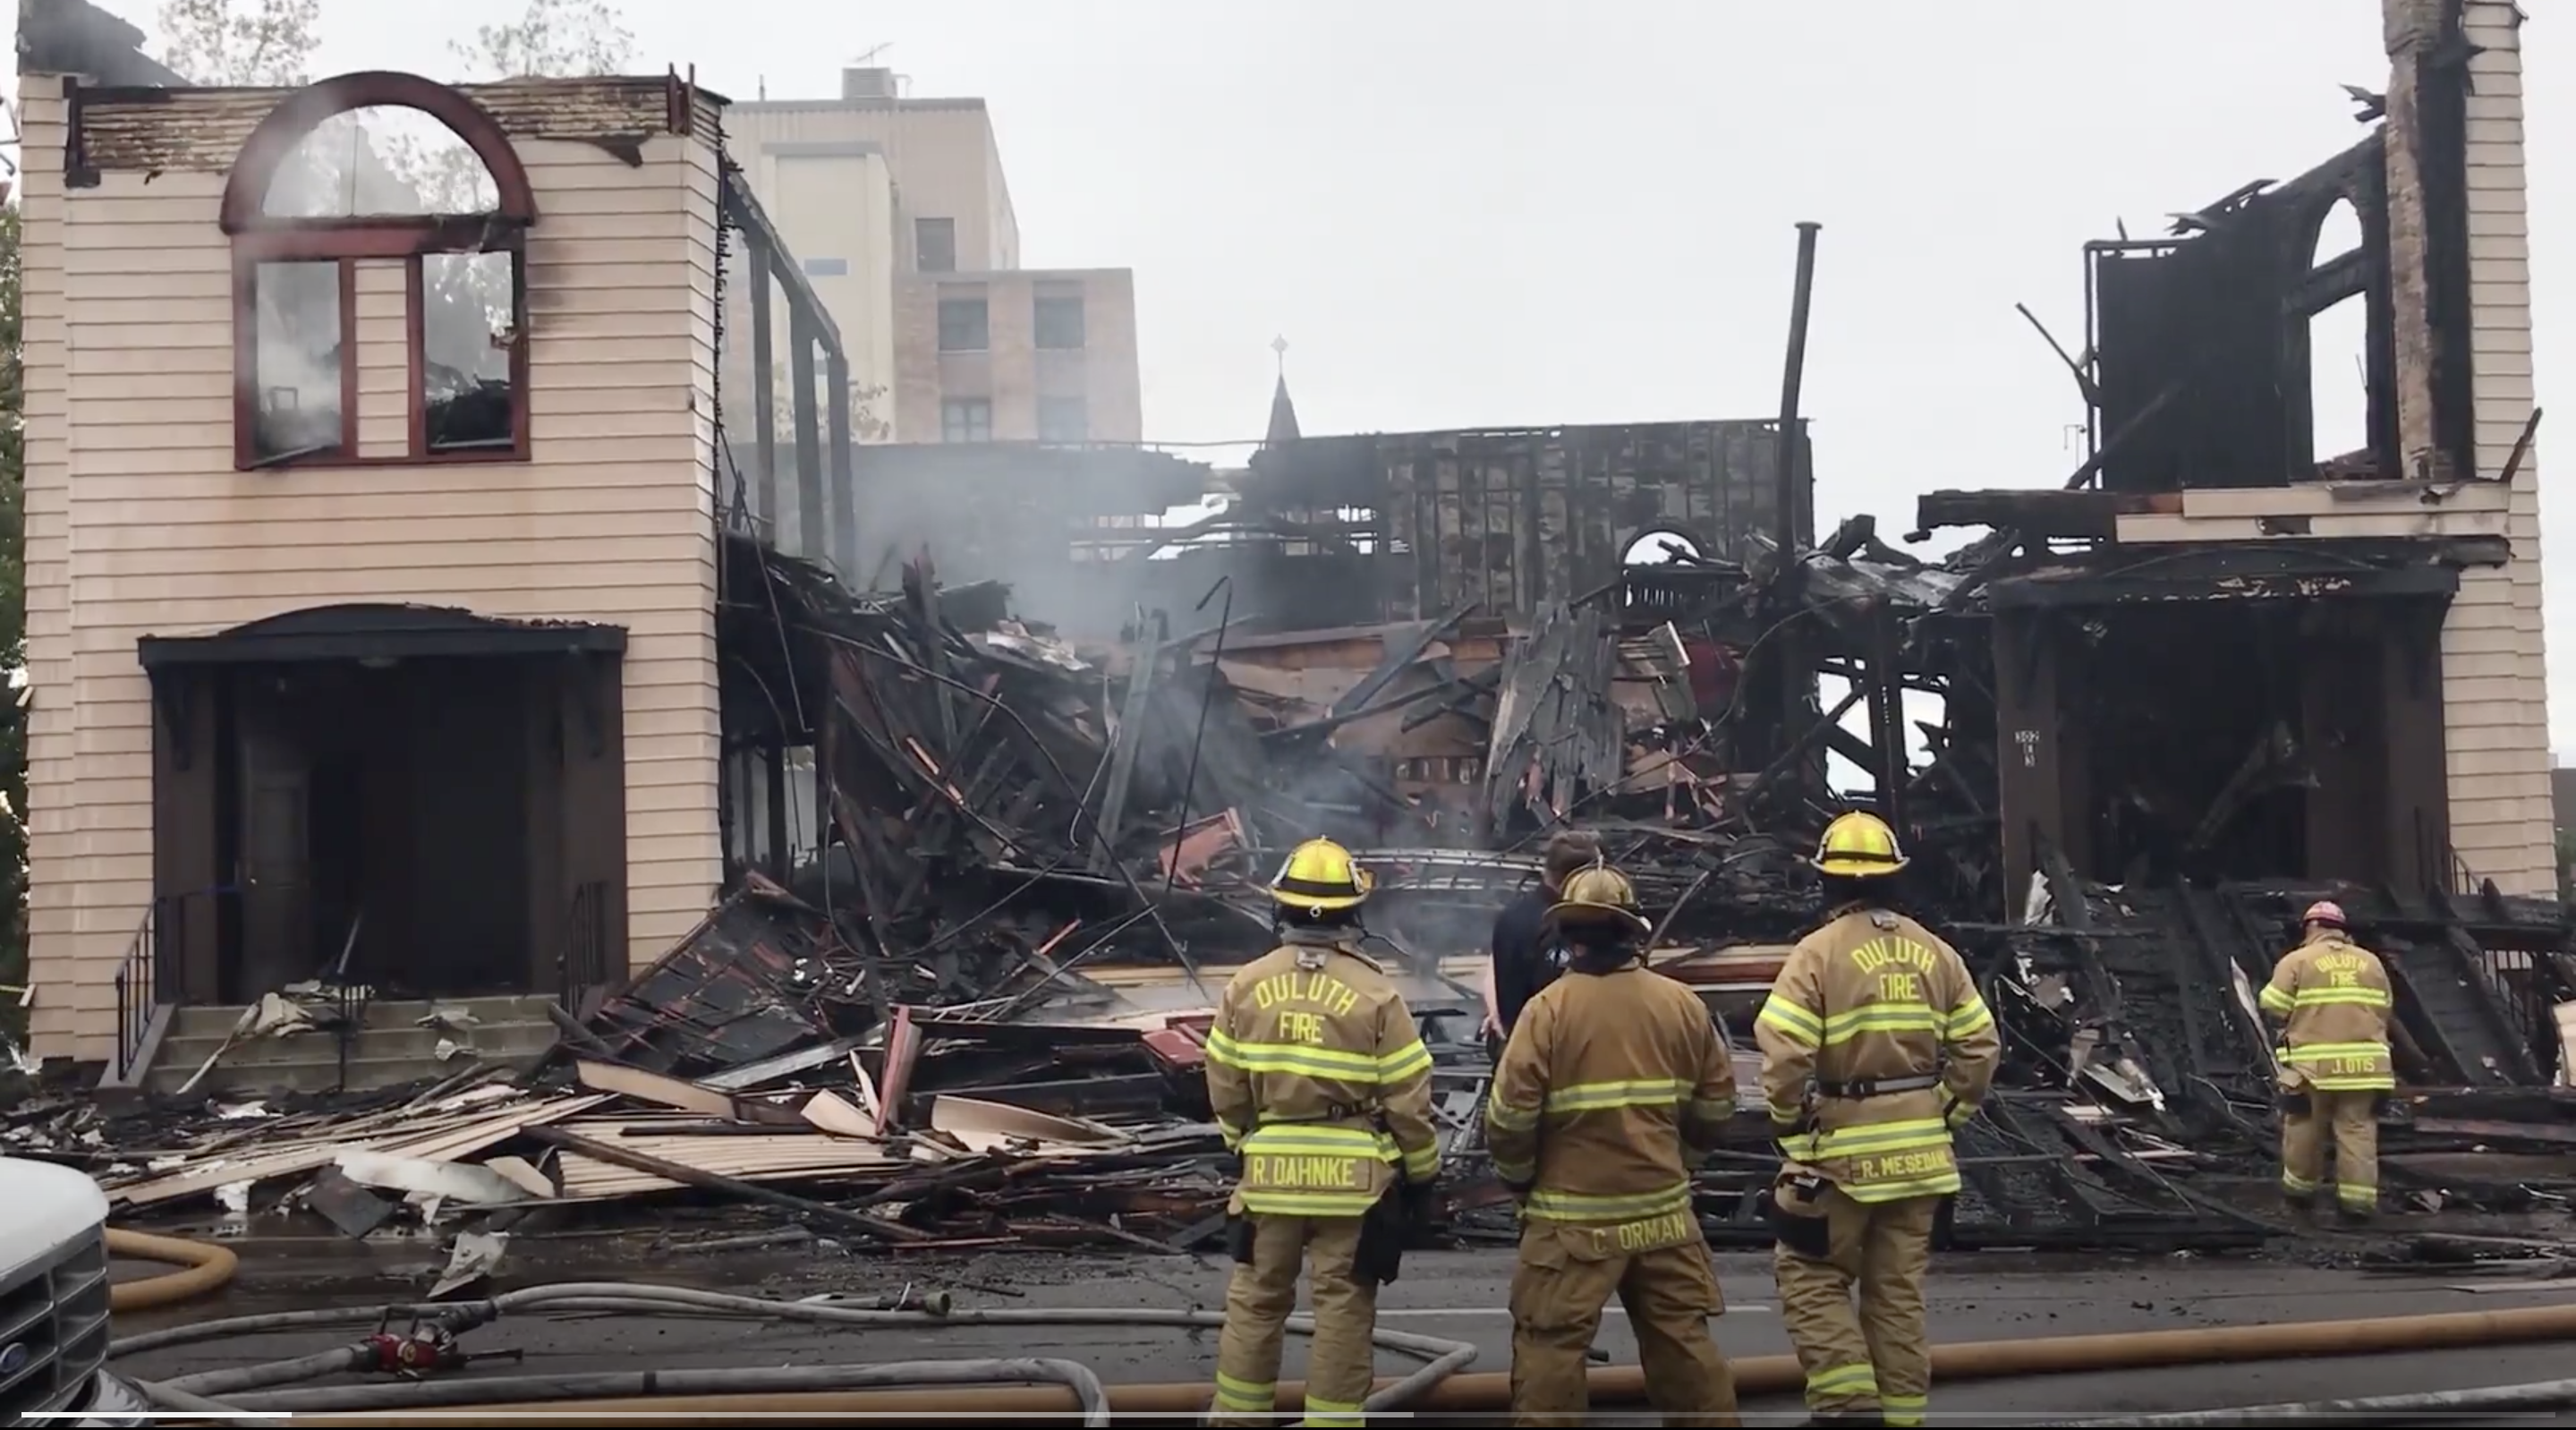 My family synagogue burned down in Minnesota this week. We lost much more than a building. - Jewish Telegraphic Agency